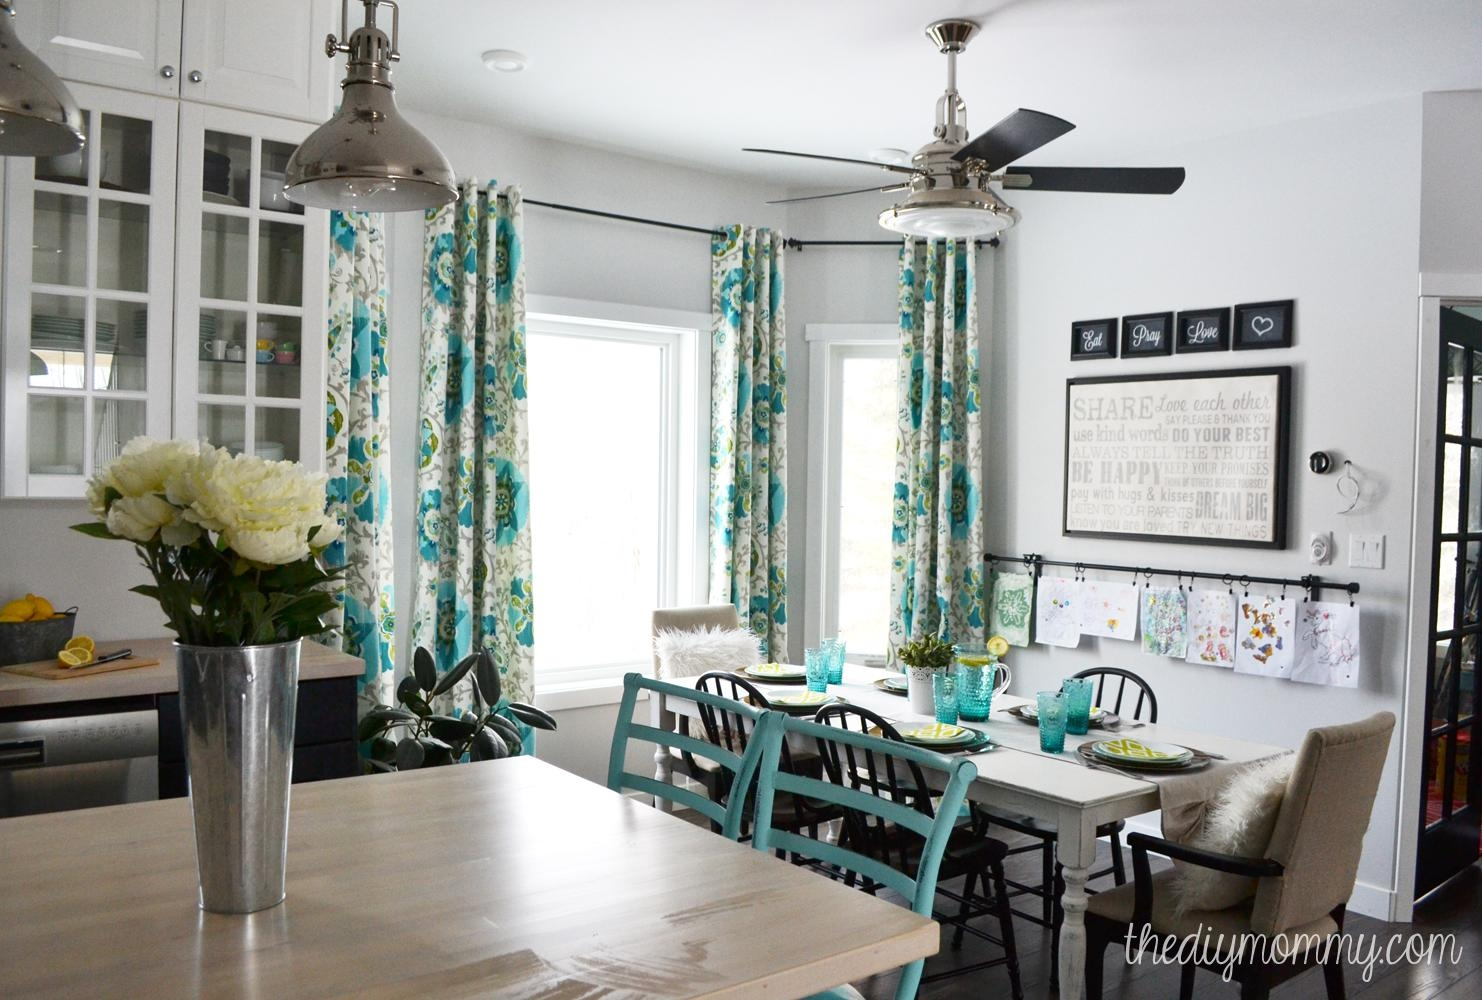 A Black, White And Turquoise Diy Kitchen Design With Ikea Cabinets Inside Diy Industrial Wall Art (Image 2 of 20)